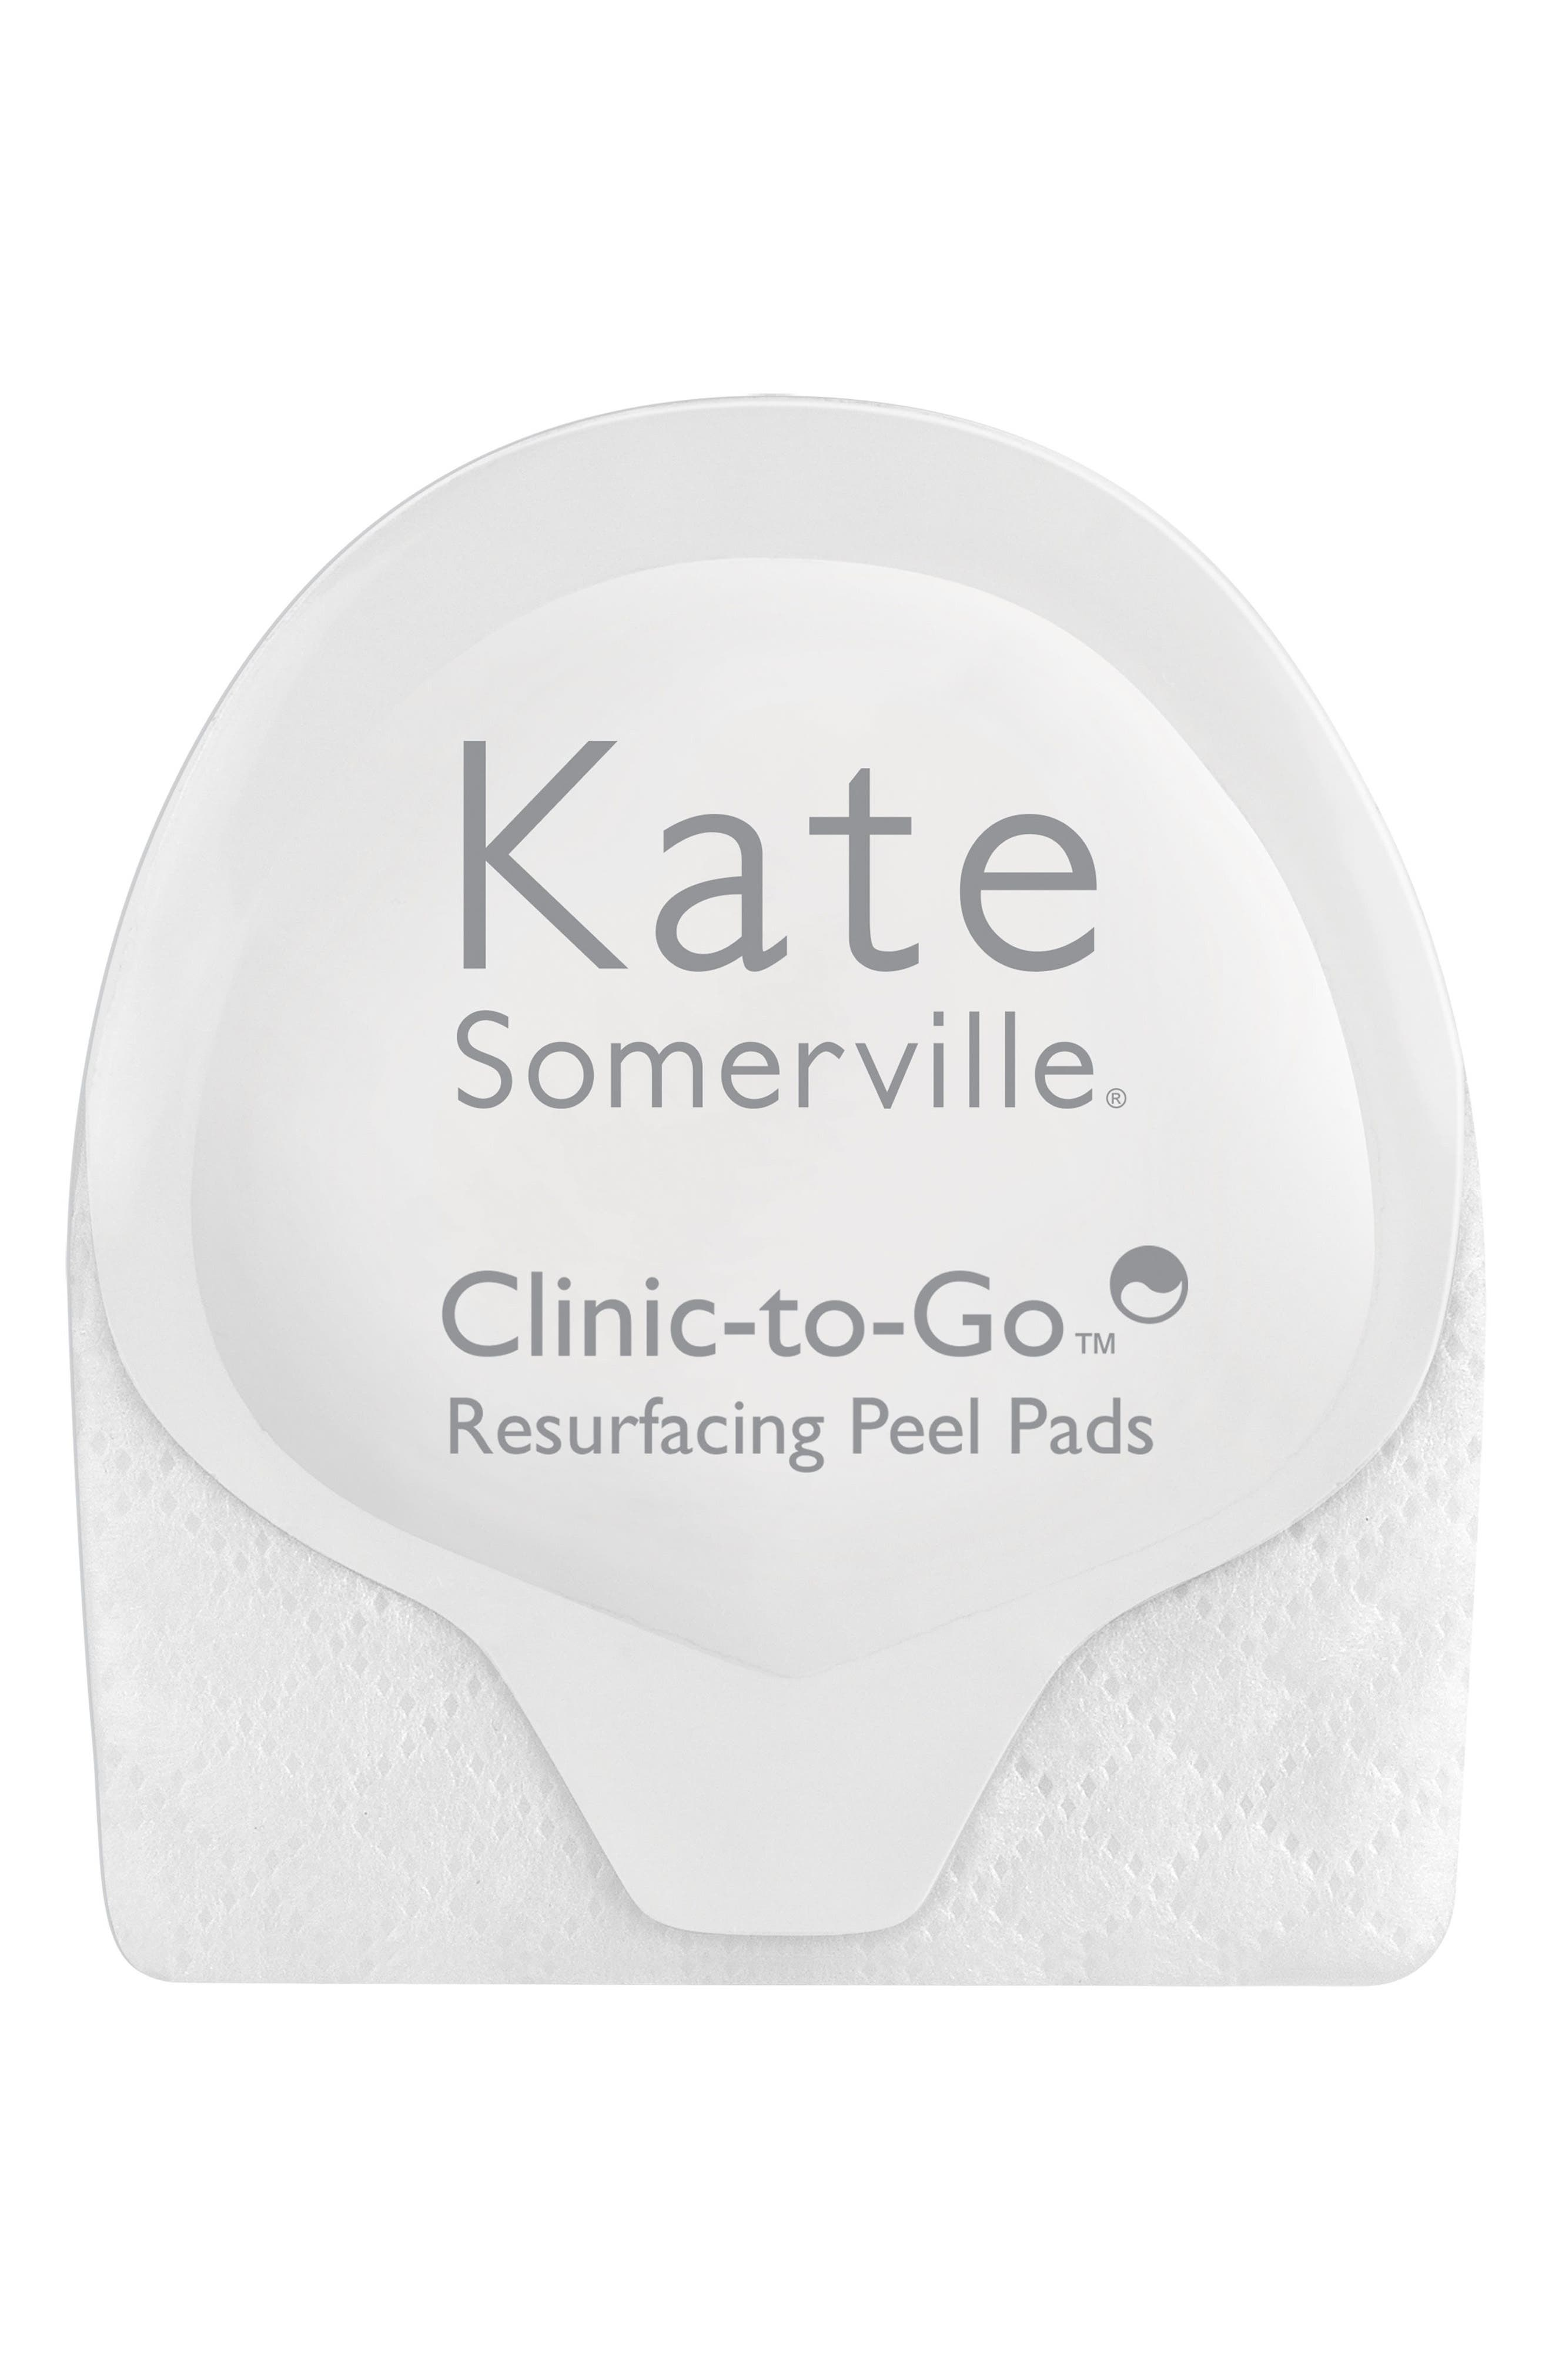 KATE SOMERVILLE® 'Clinic-to-Go' Resurfacing Peel Pads